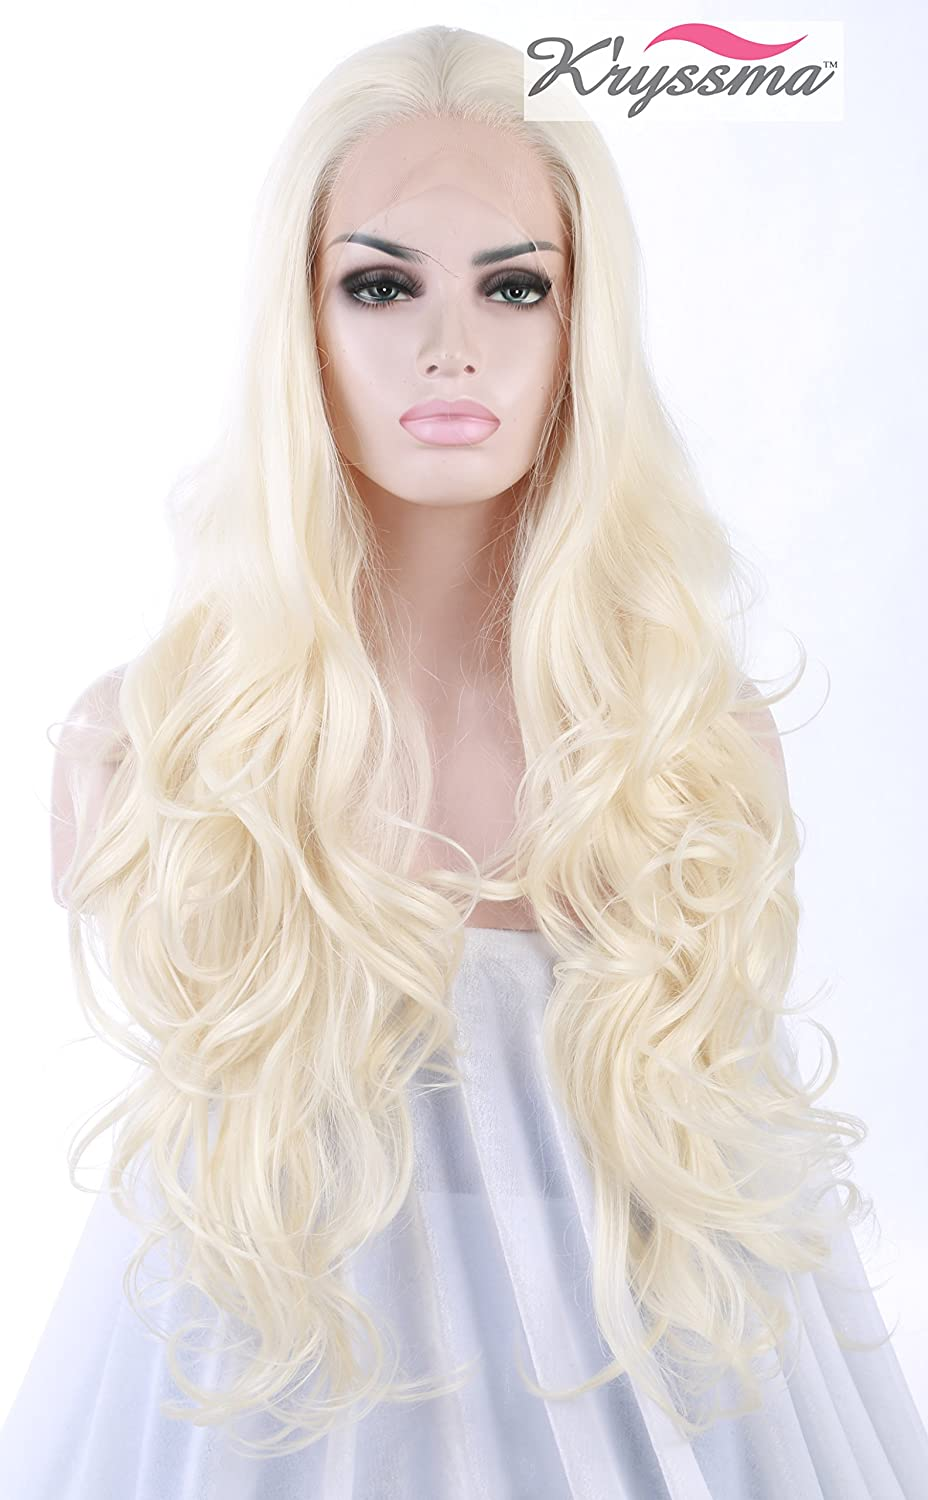 K'ryssma® Fashionable Platinum Blonde Glueless Lace Front Wigs For White Women Cheap Long Wavy Repalcement Full Synthetic Hair Wig For Daily Wear Heat Friendly 24 Inches K'ryssma